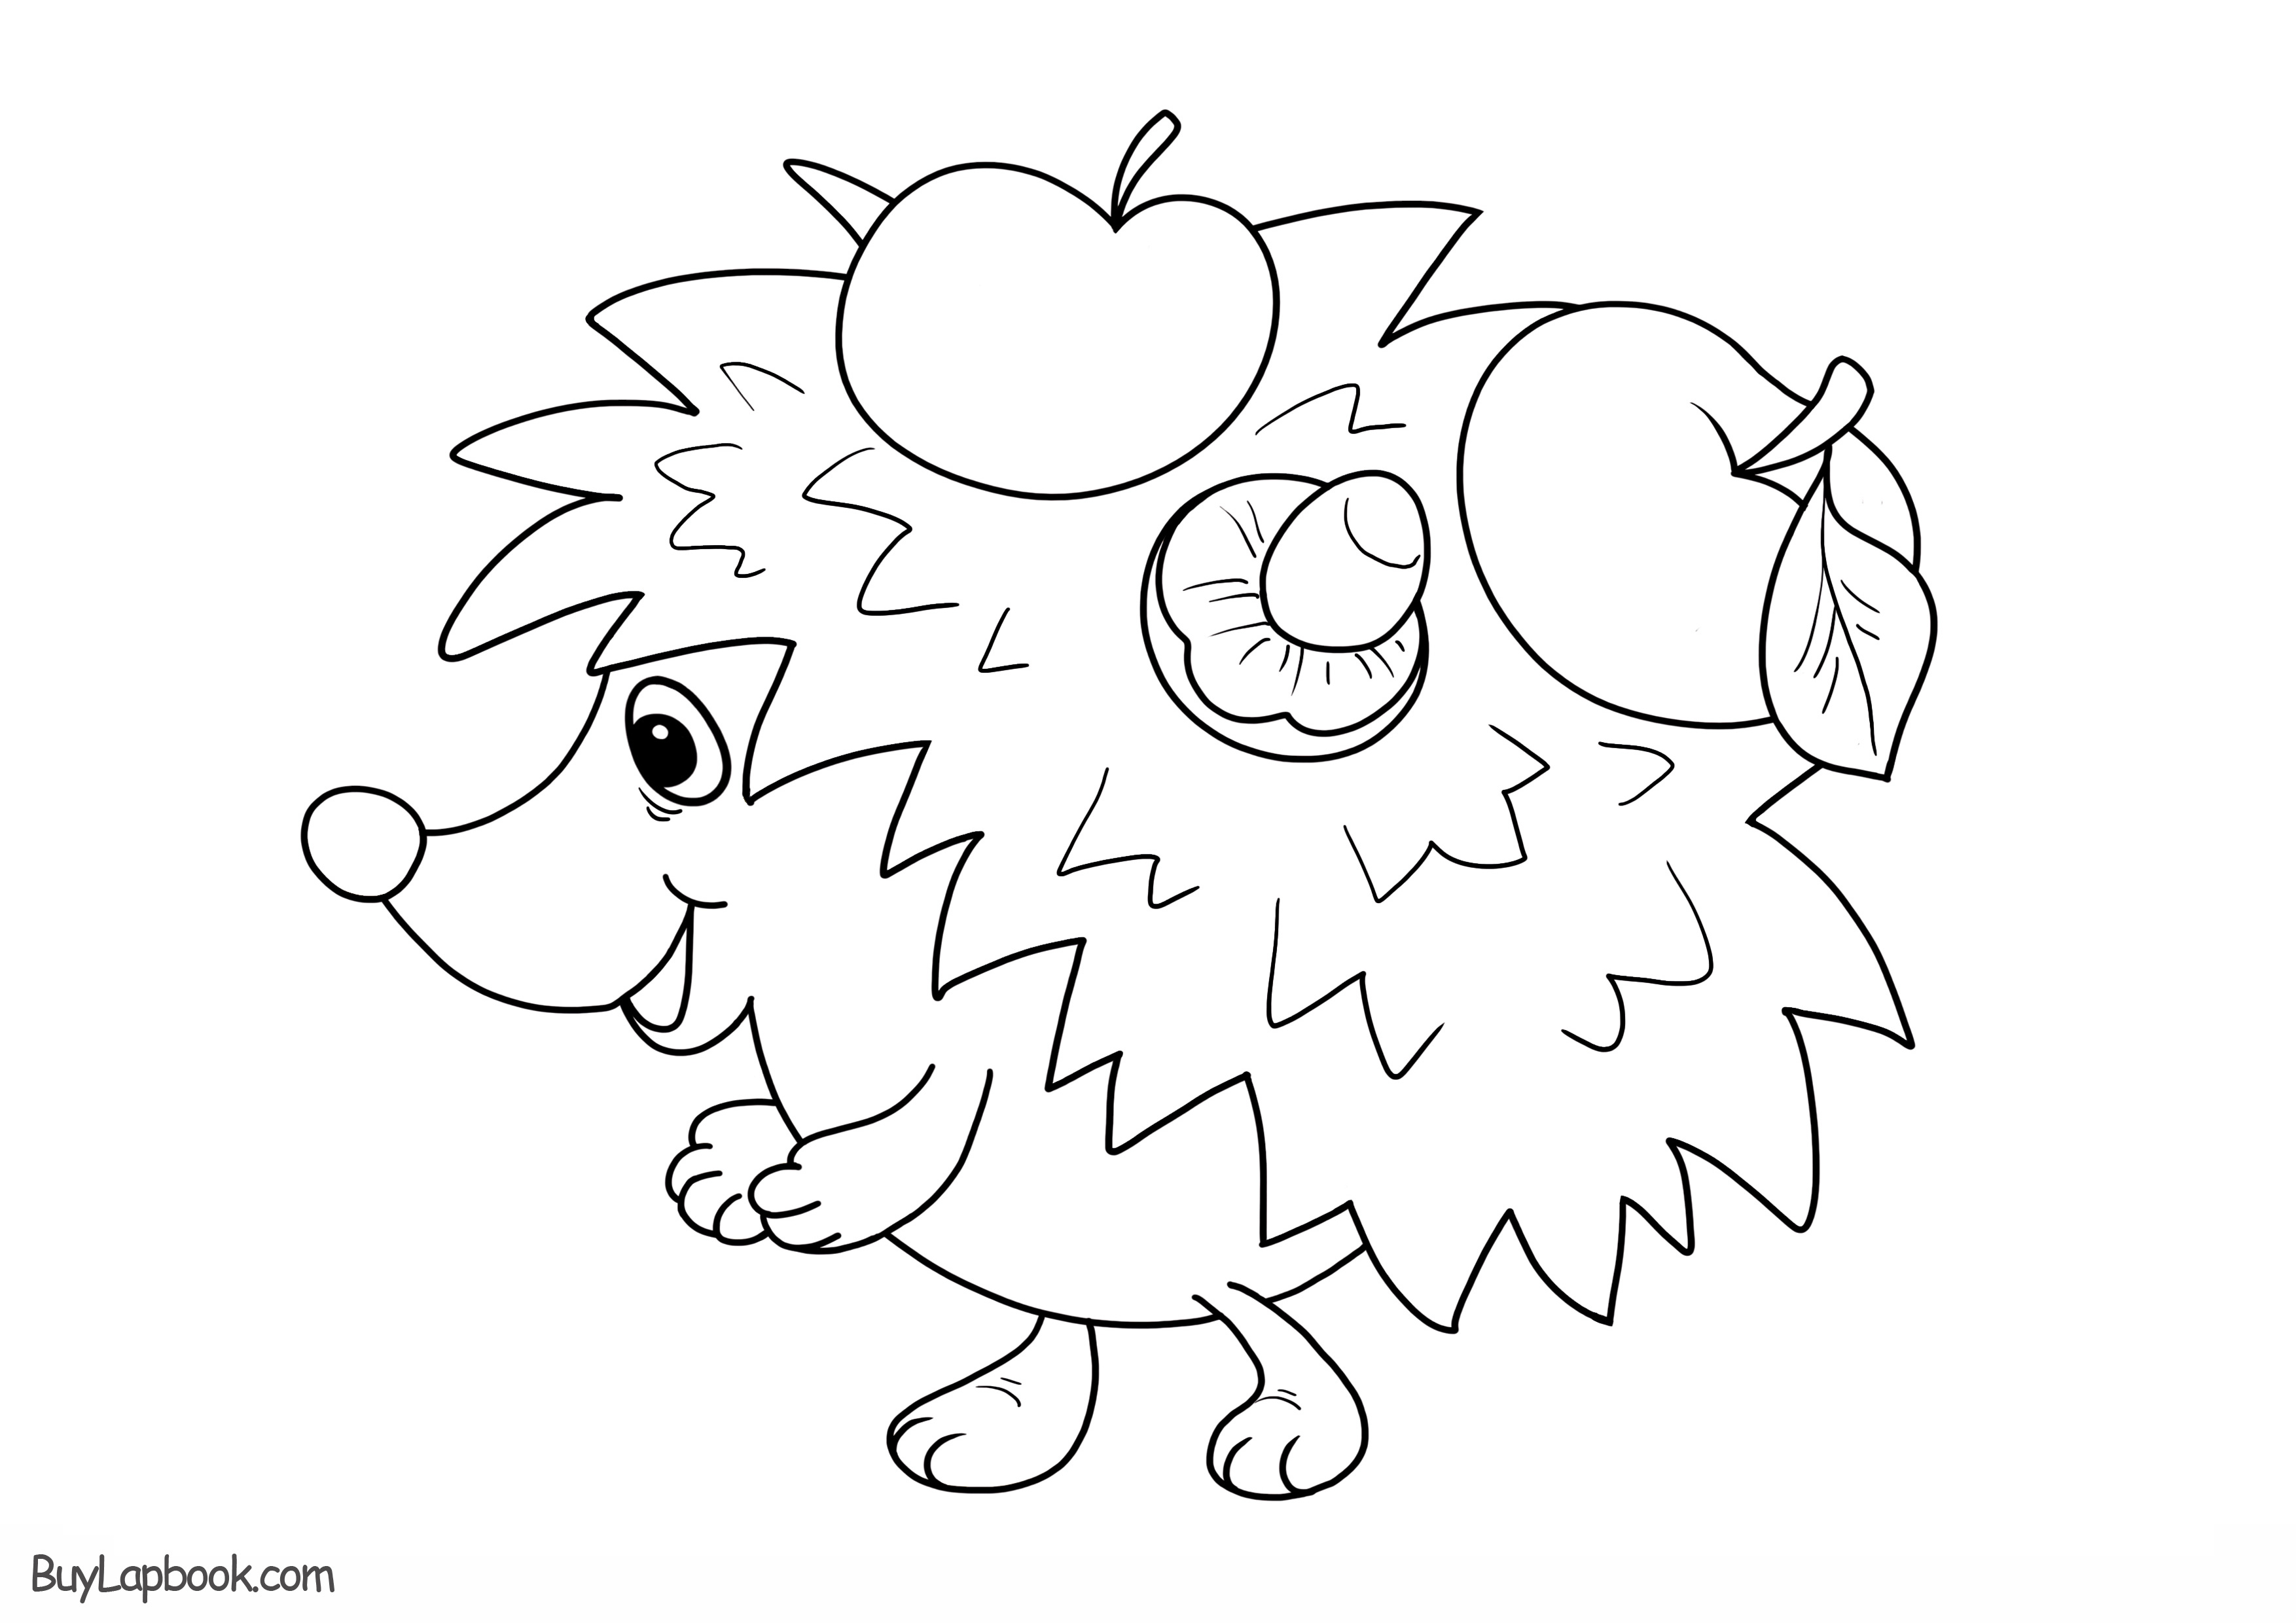 Hedgehogs Free Printable Coloring And Activity Page For Kids Buylapbook